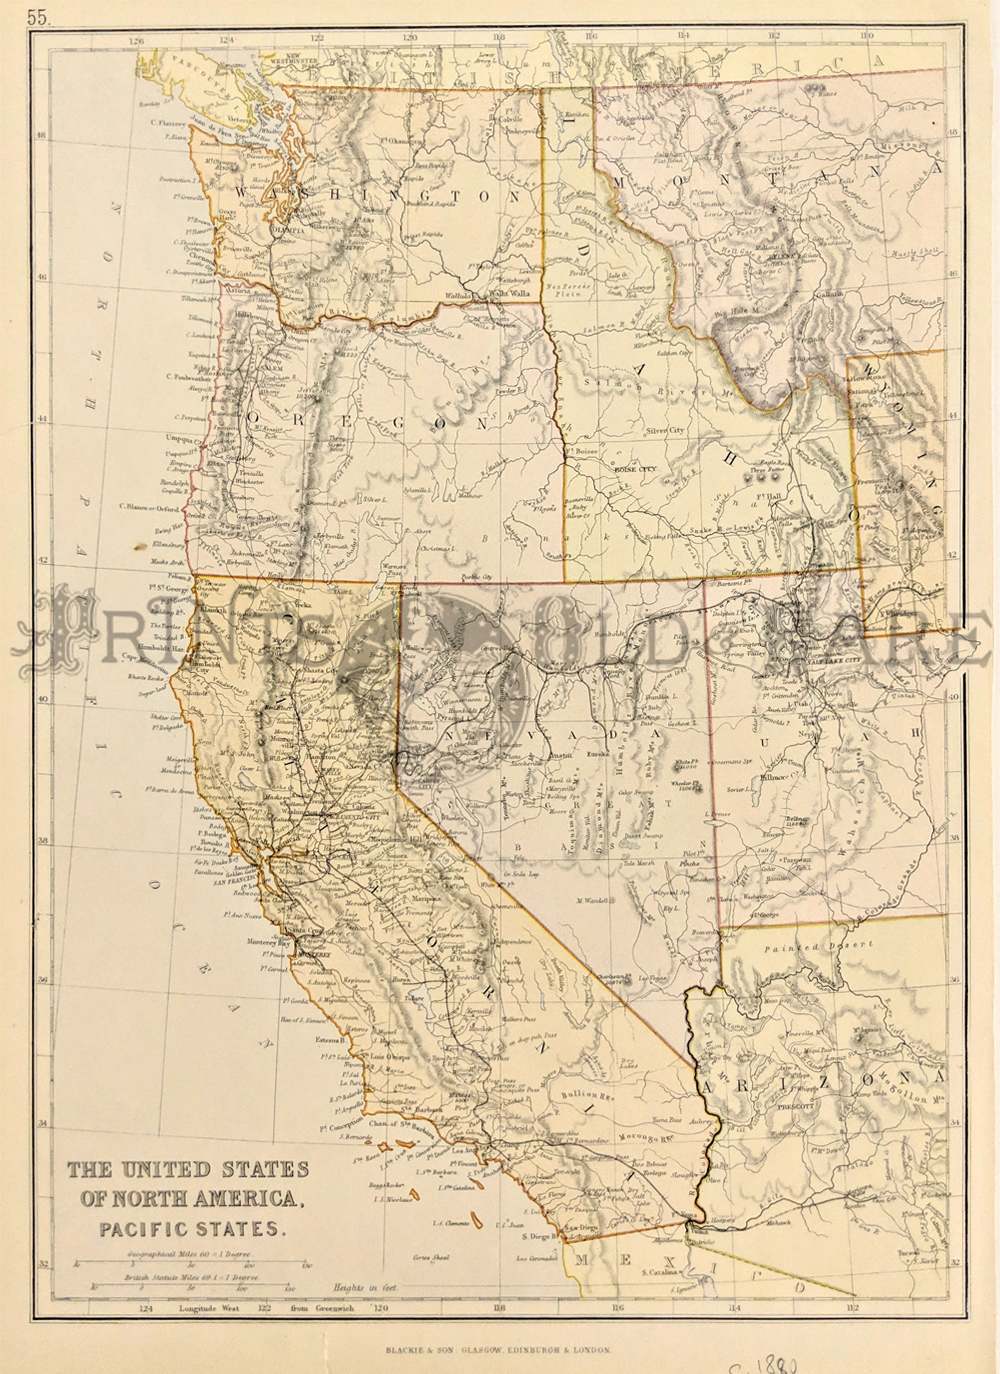 204us circa 1880 western state map the united states of north america pacific states this colored map shows montana utah and arizona west to the